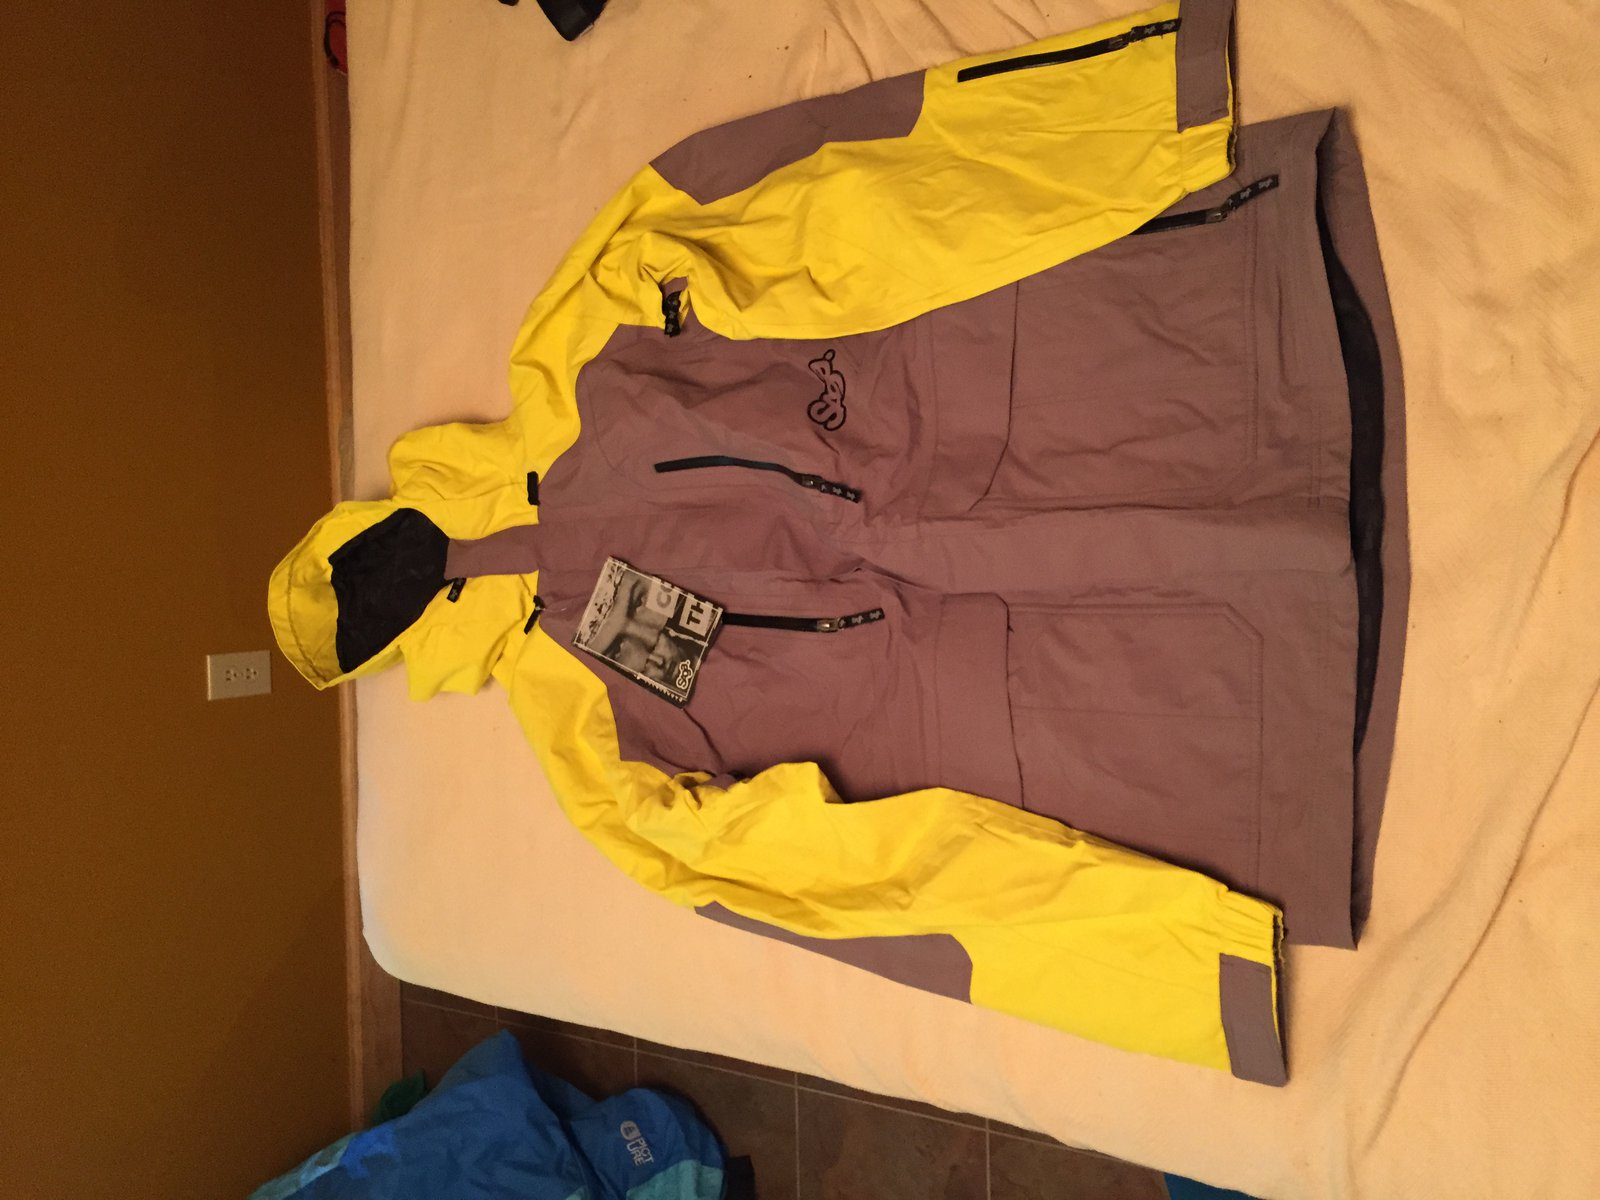 XL Saga Jacket from 11/12 BNWT